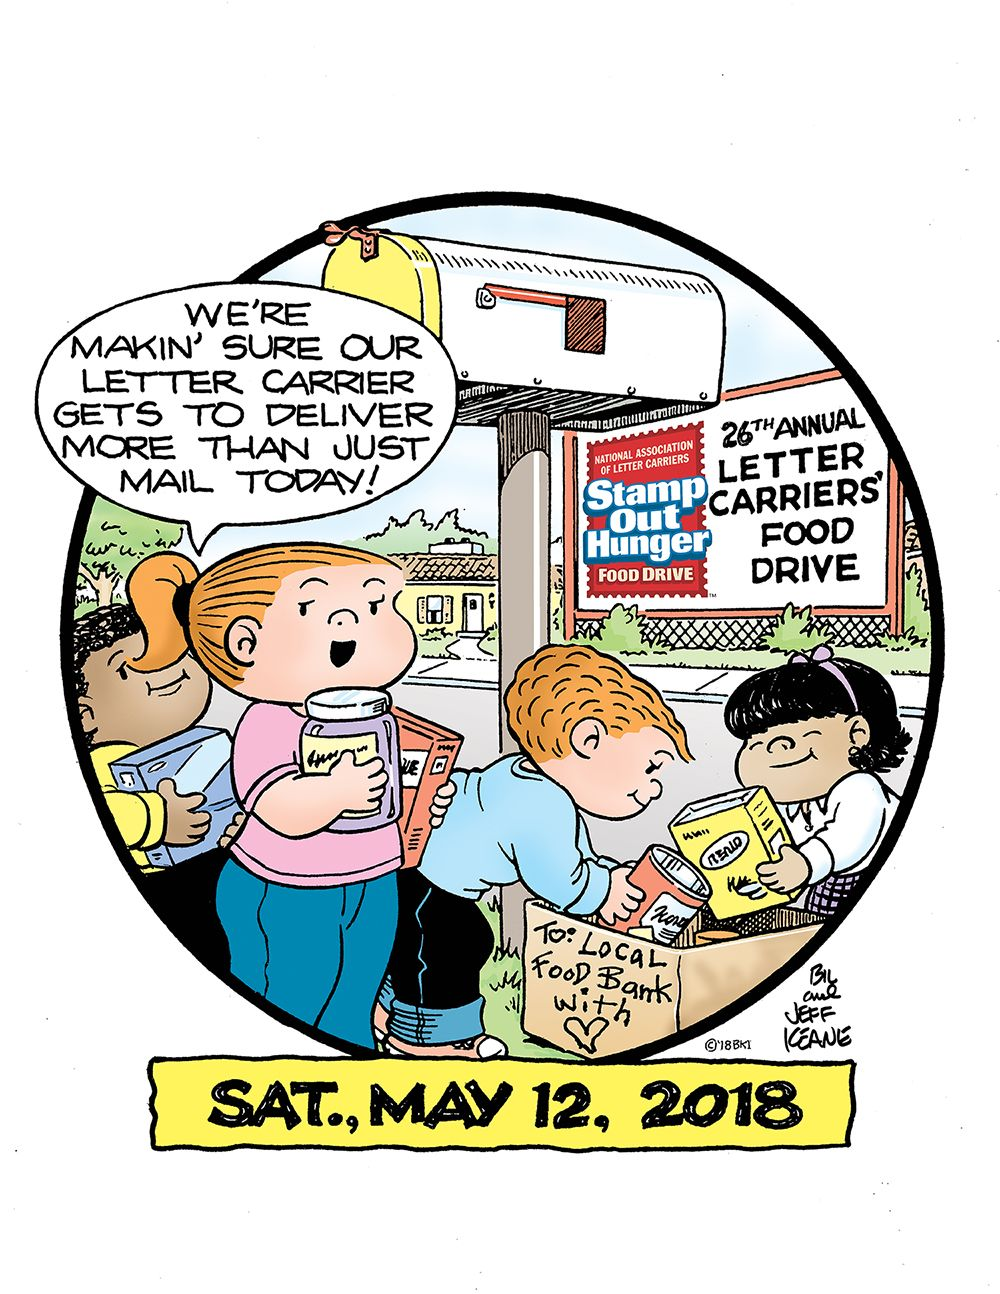 Stamp Out Hunger Food Drive set for Saturday, May 12